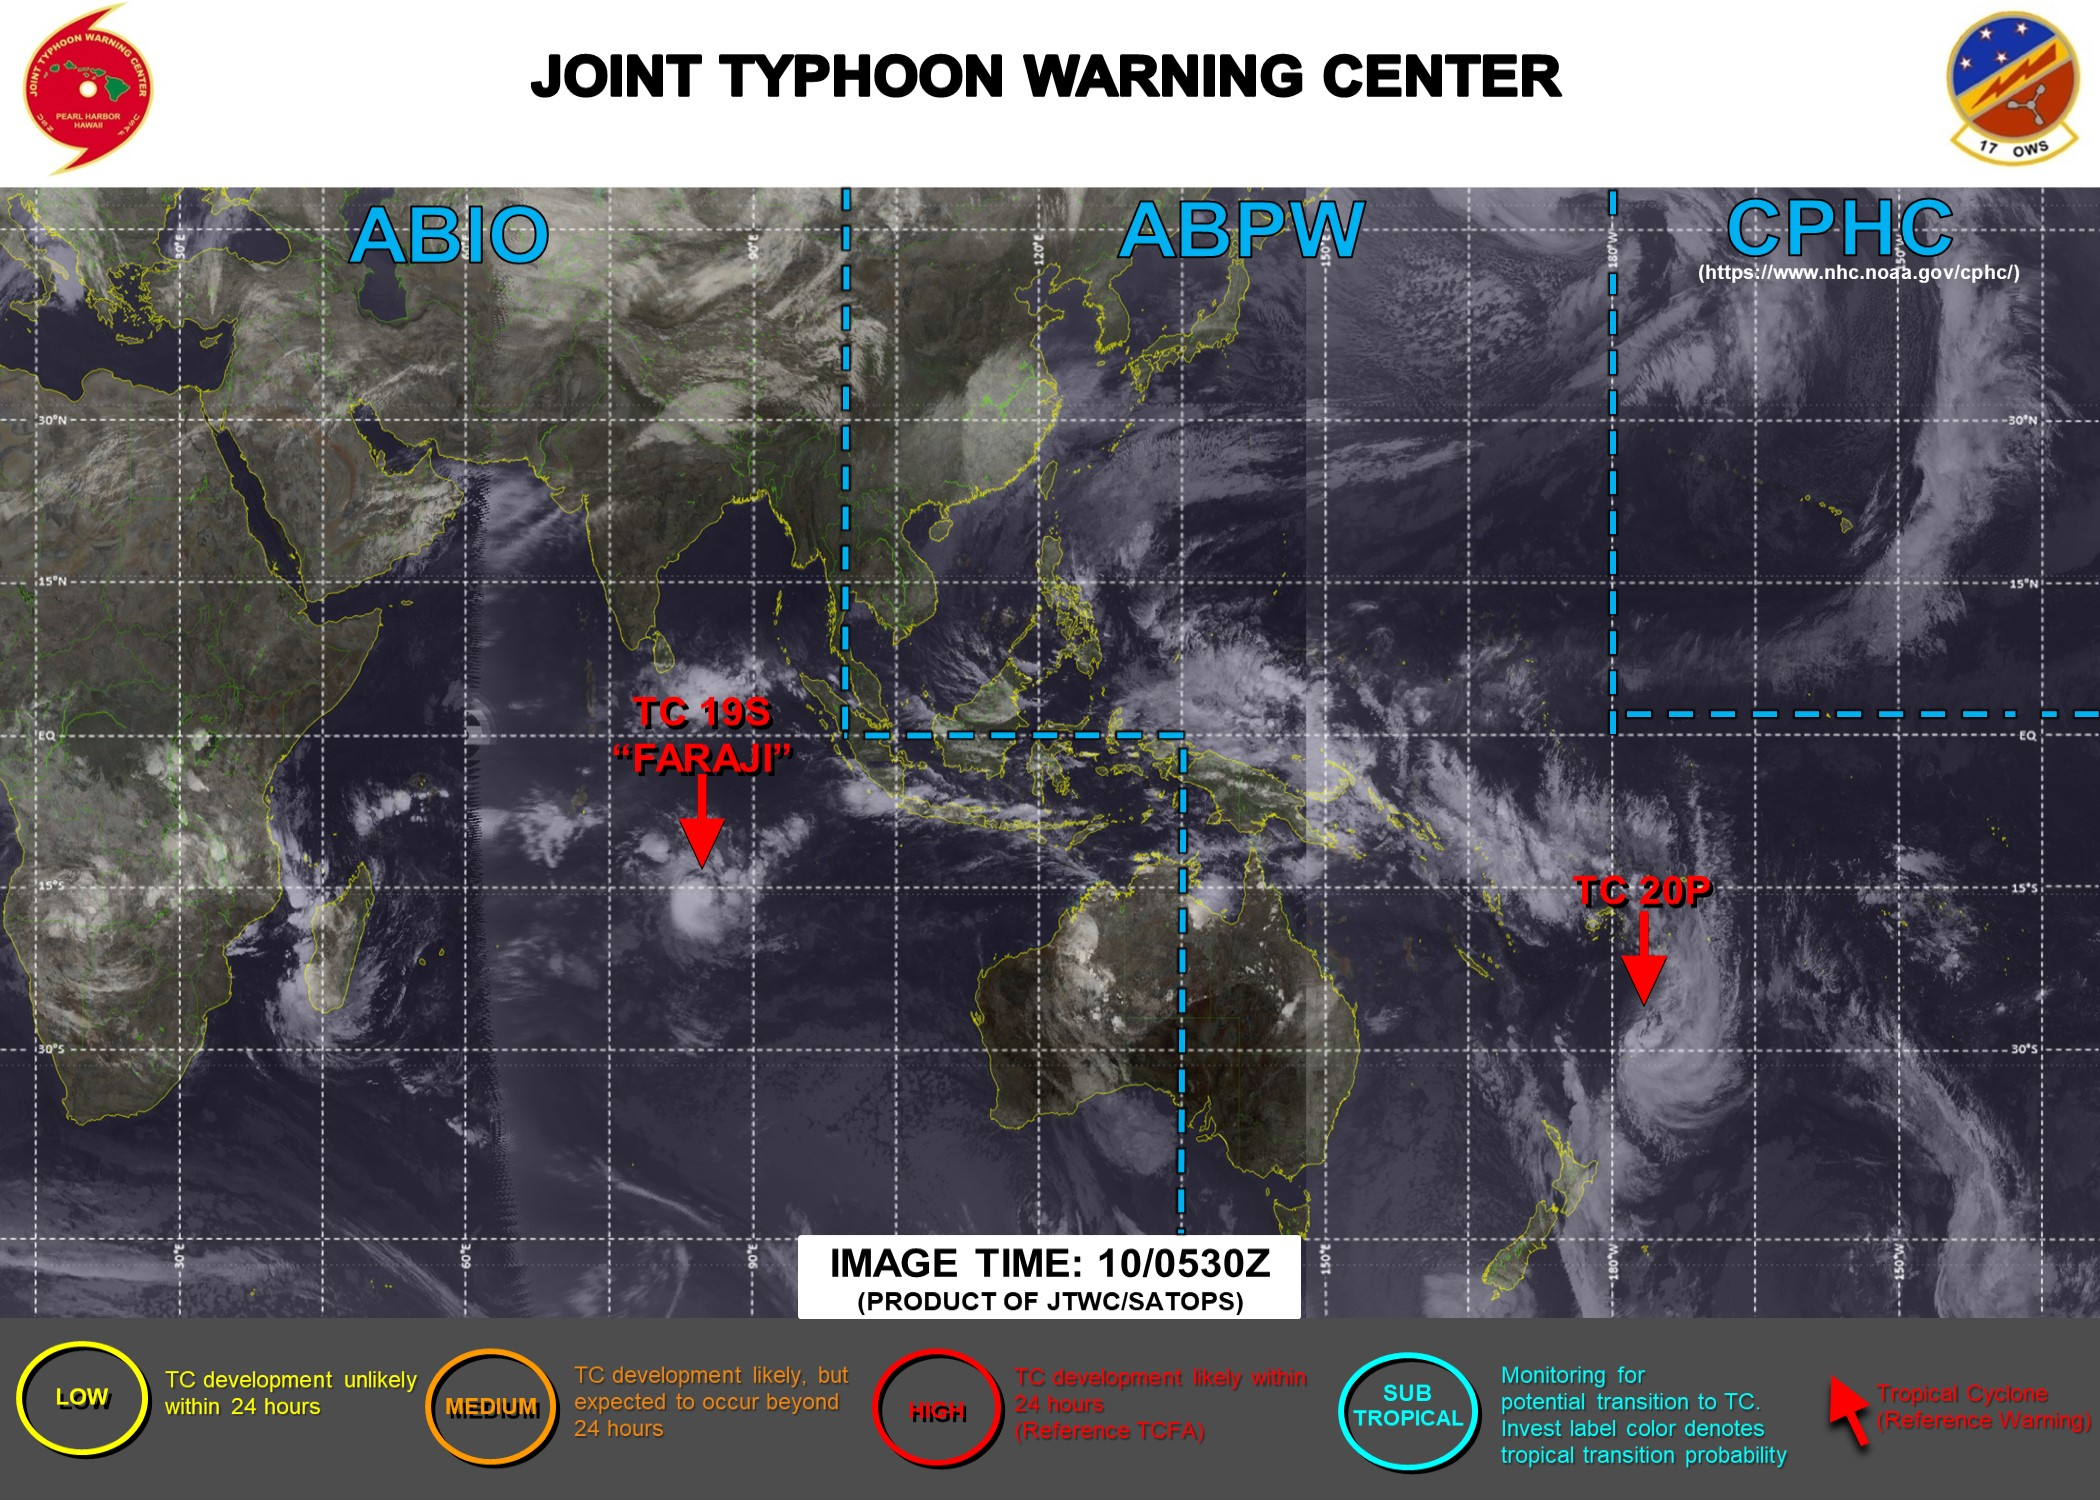 10/15UTC. JTWC IS ISSUING 12HOURLY WARNINGS ON 19S(FARAJI). WARNING 3 /FINAL WAS ISSUED FOR 20P AS THE SYSTEM IS COMPLETING EXTRATROPICAL TRANSITION .3 HOURLY SATELLITE BULLETINS ARE PROVIDED FOR BOTH 19S AND 20P.